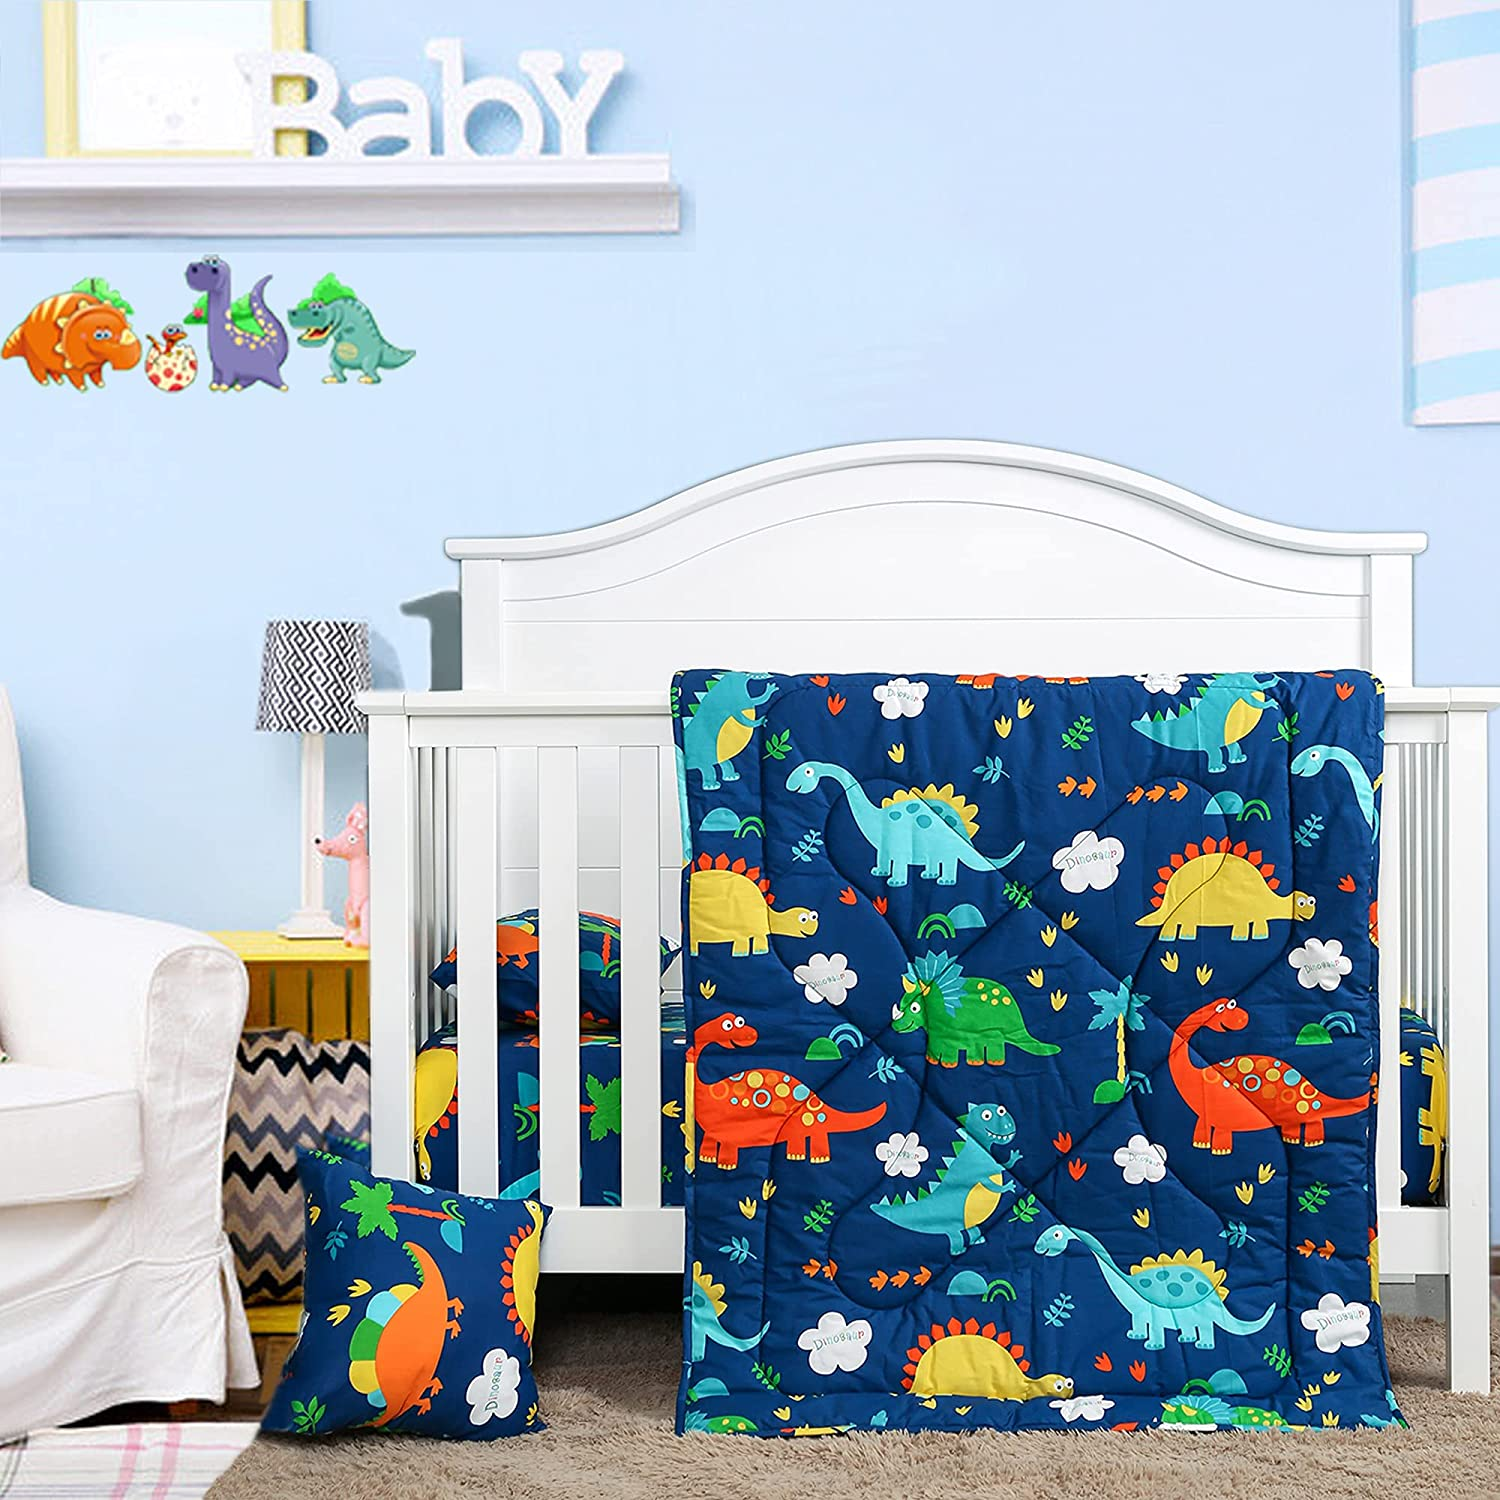 Dinosaur Crib Bedding Set 100% Cotton 3 Piece Baby Nursery Bedding Sets-UOMNY Small Toddler Pillow Case Cover&A Crib Quilt and A Crib Sheet Cute Kids Bedding Set for Boys/Girls